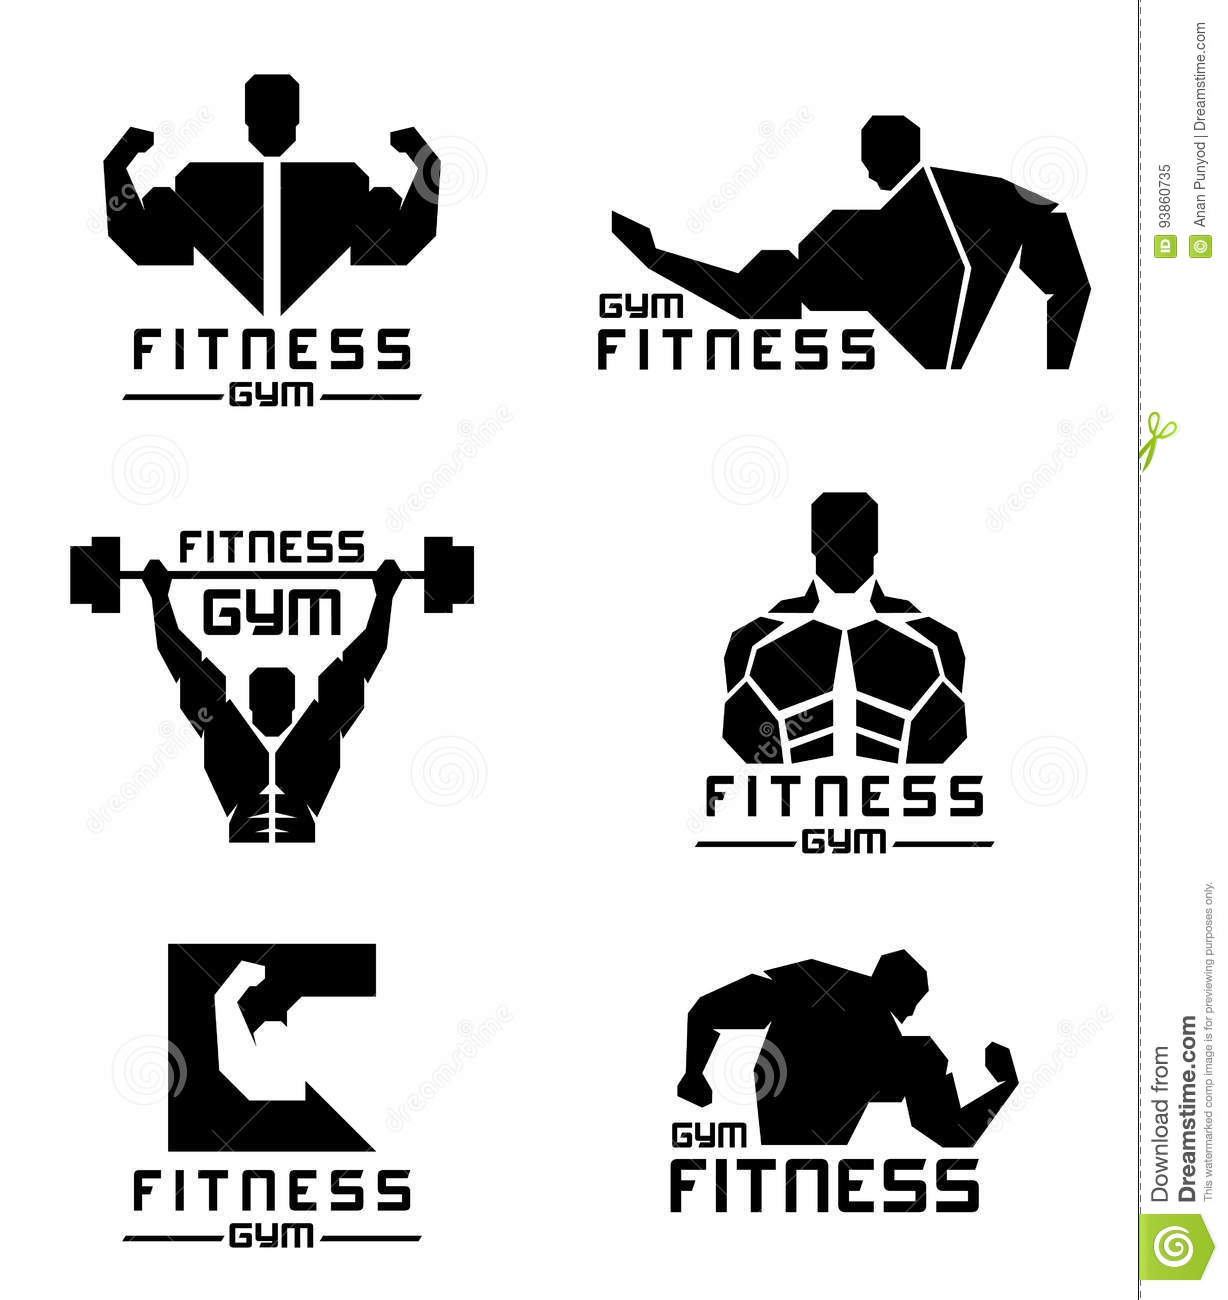 Black Fitness Gym Logo With Men Have Strong Muscles Vector